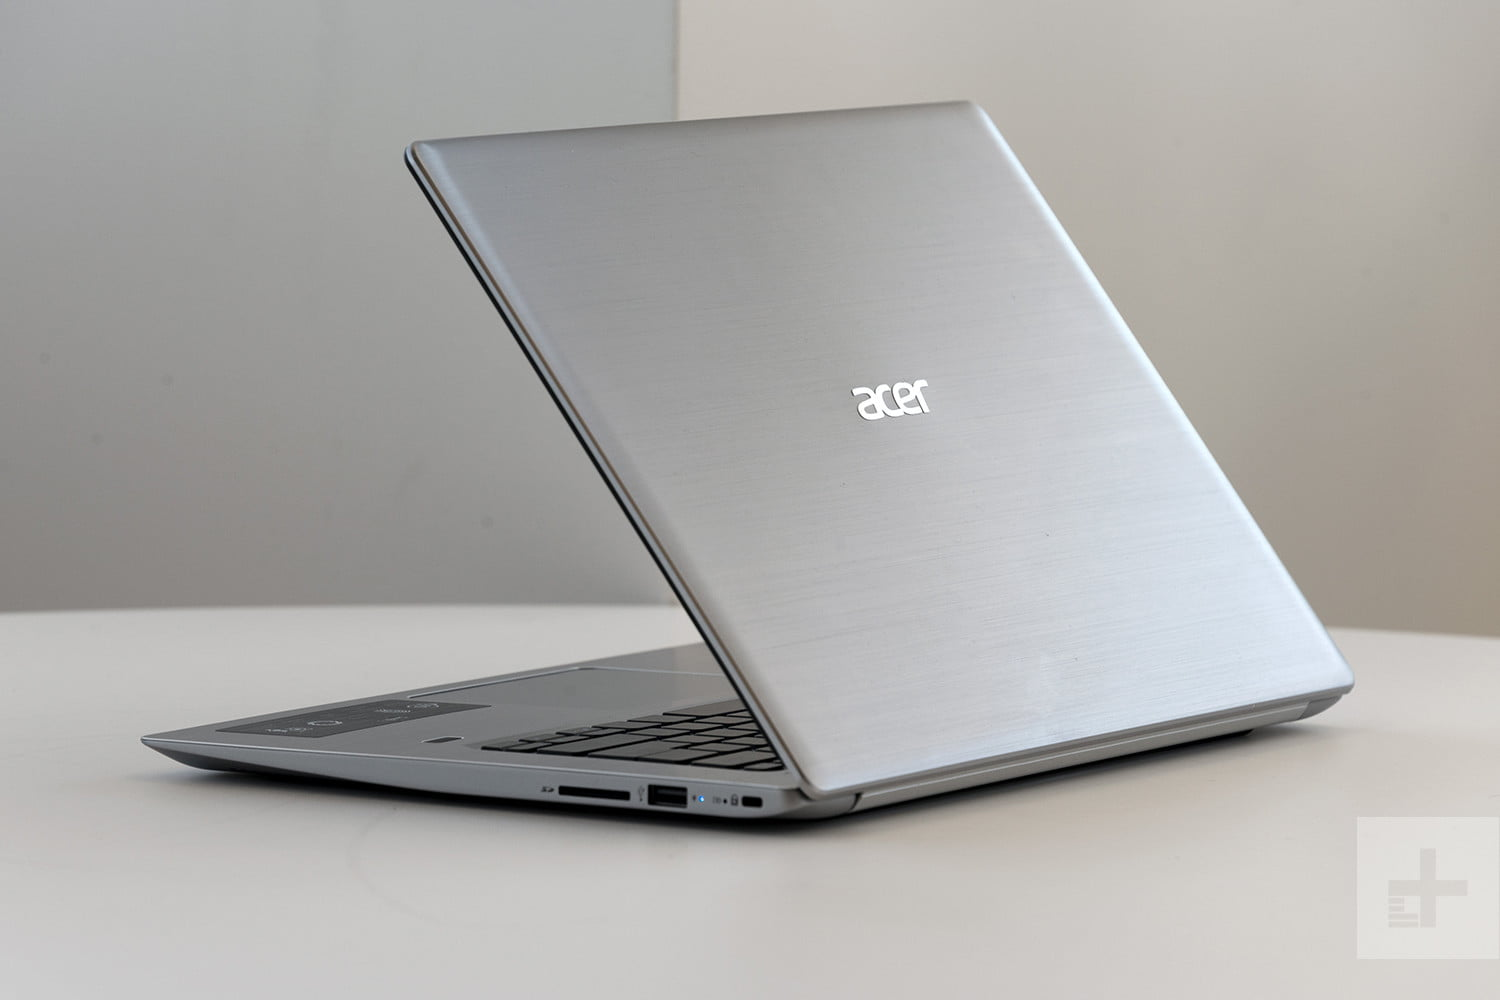 Acer Swift 3 Review Digital Trends Laptop Dell Inspiron 13 5370 Core I5 Pink Lid